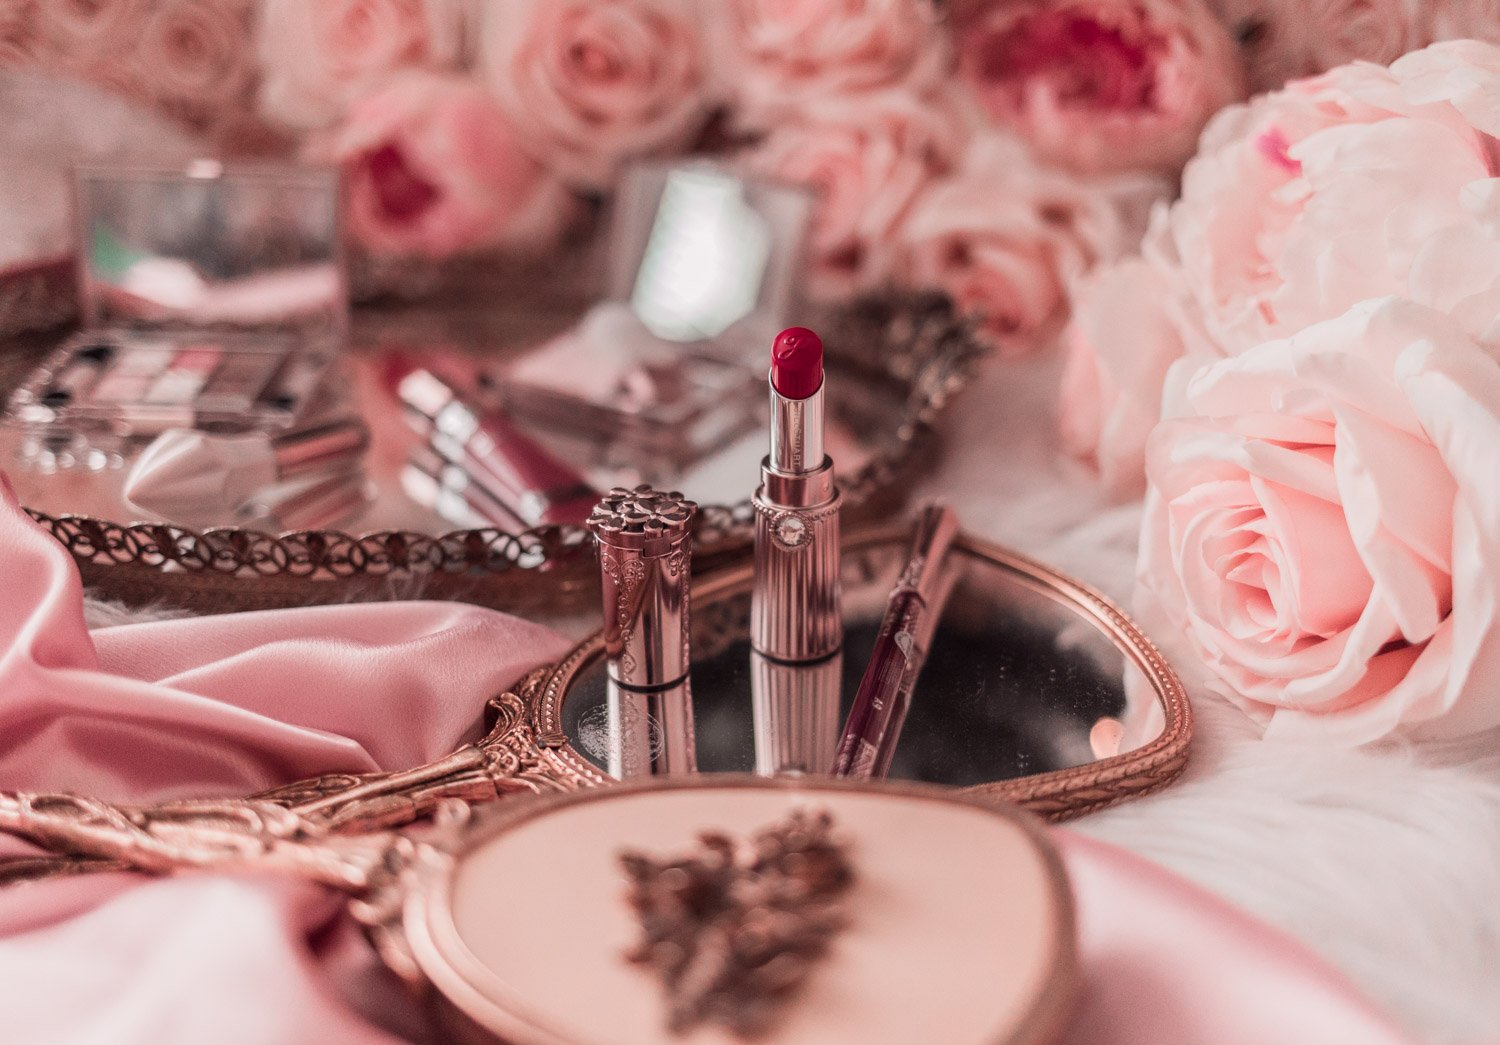 Elizabeth Hugen of Lizzie in Lace shares her favorite Jill Stuart makeup